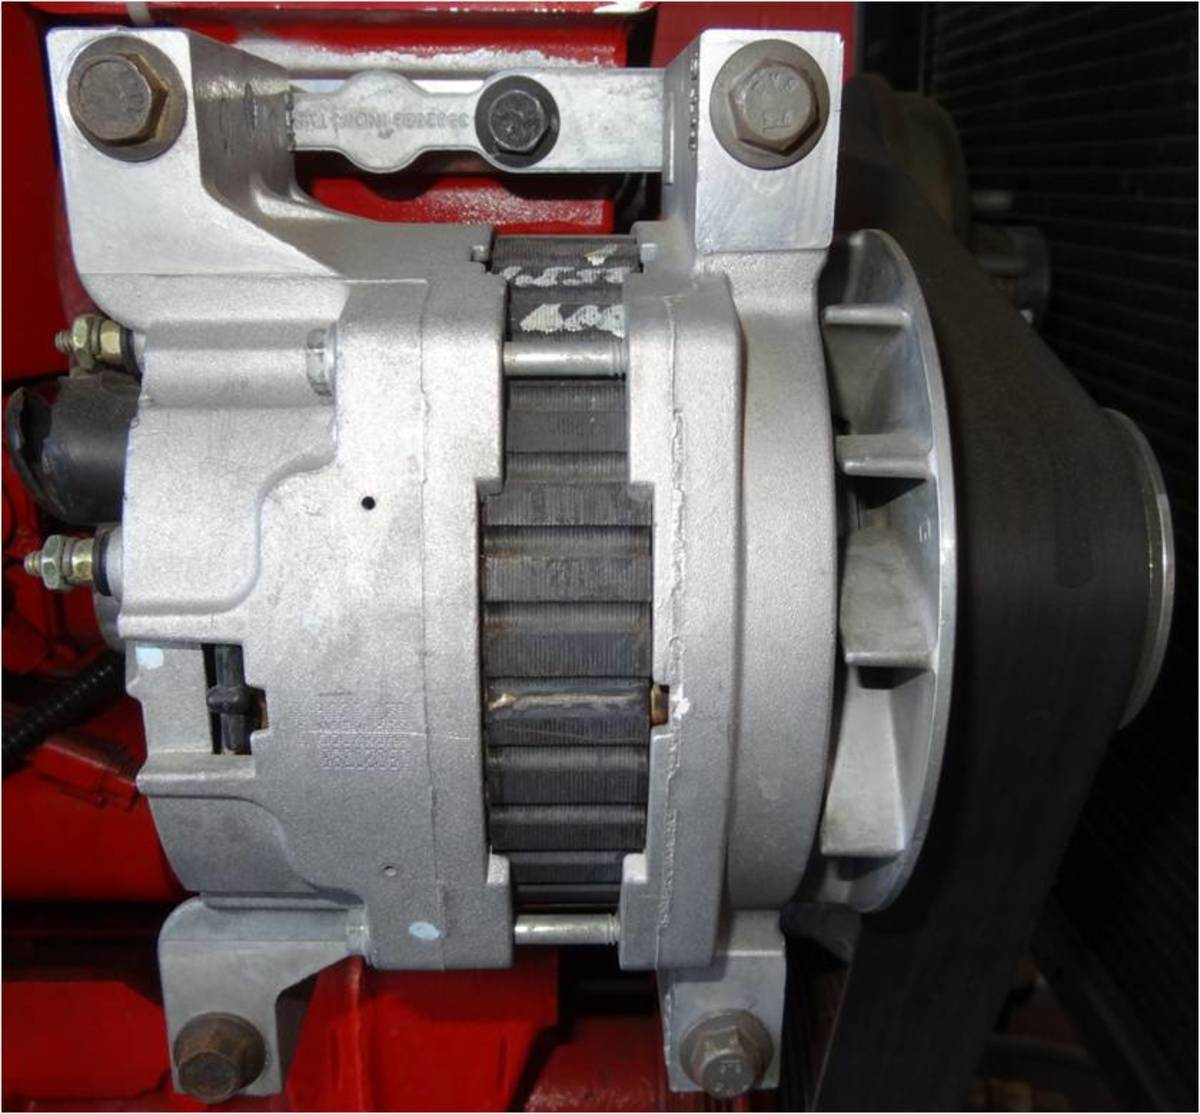 Most alternators today are solidly mounted and are driven with a serpentine belt.